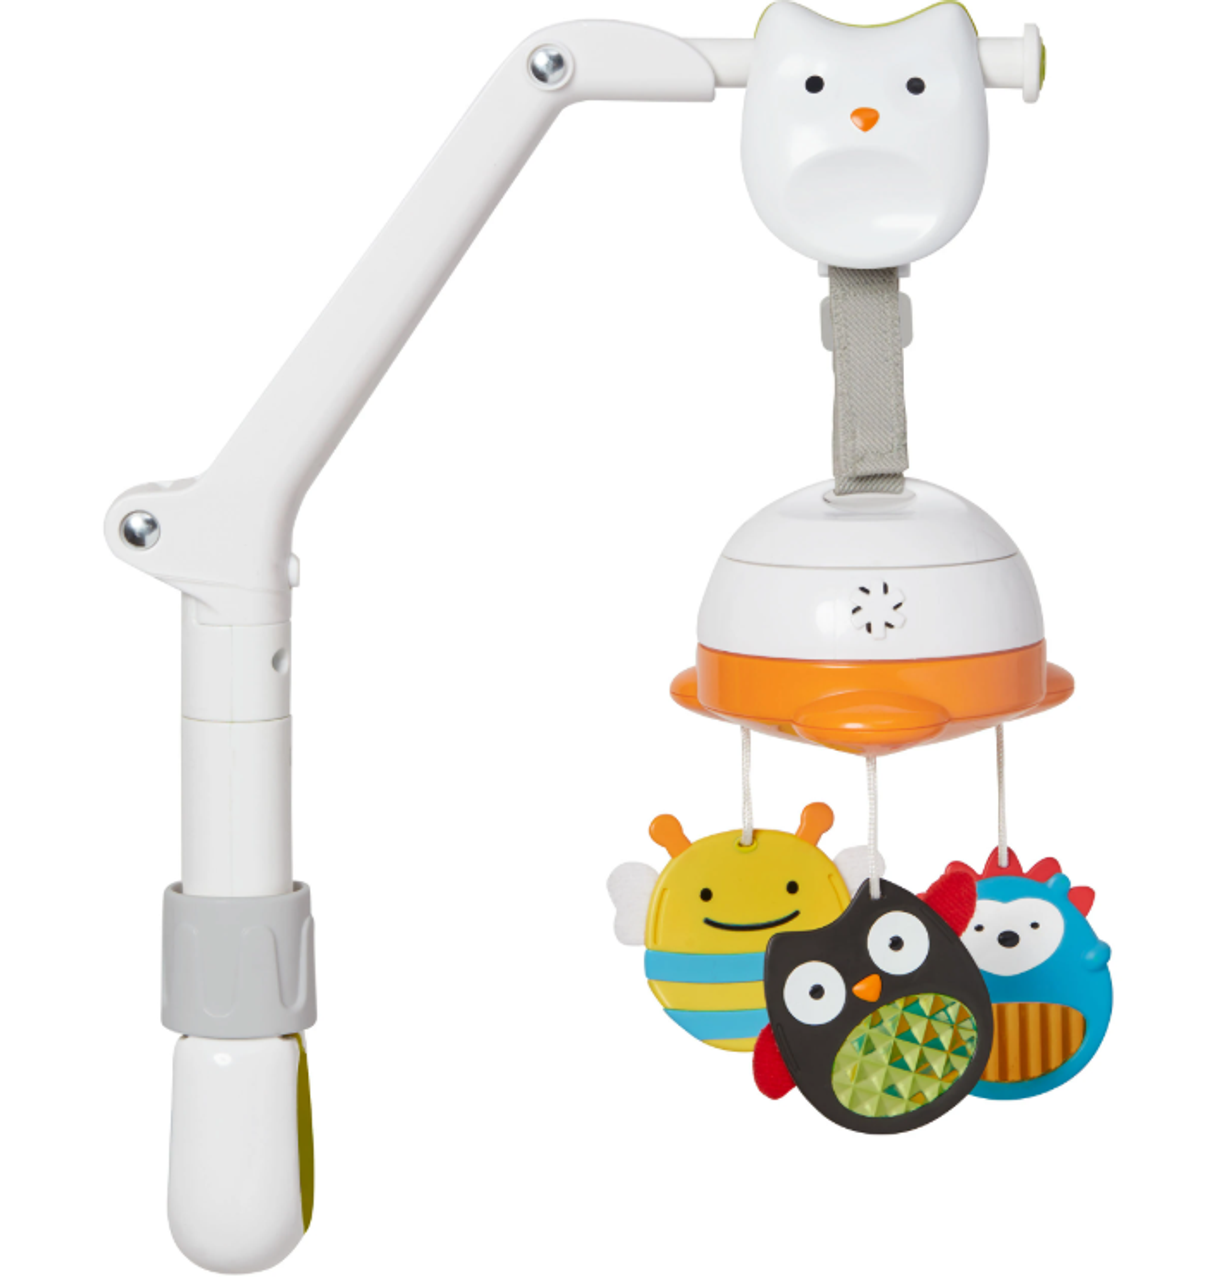 Skip Hop Explore 3 in 1 Travel Mobile   Baby Barn Discounts Skip Hop's portable baby mobile easily attaches to cribs, strollers and car seat carriers to engage and soothe baby with movement and music.